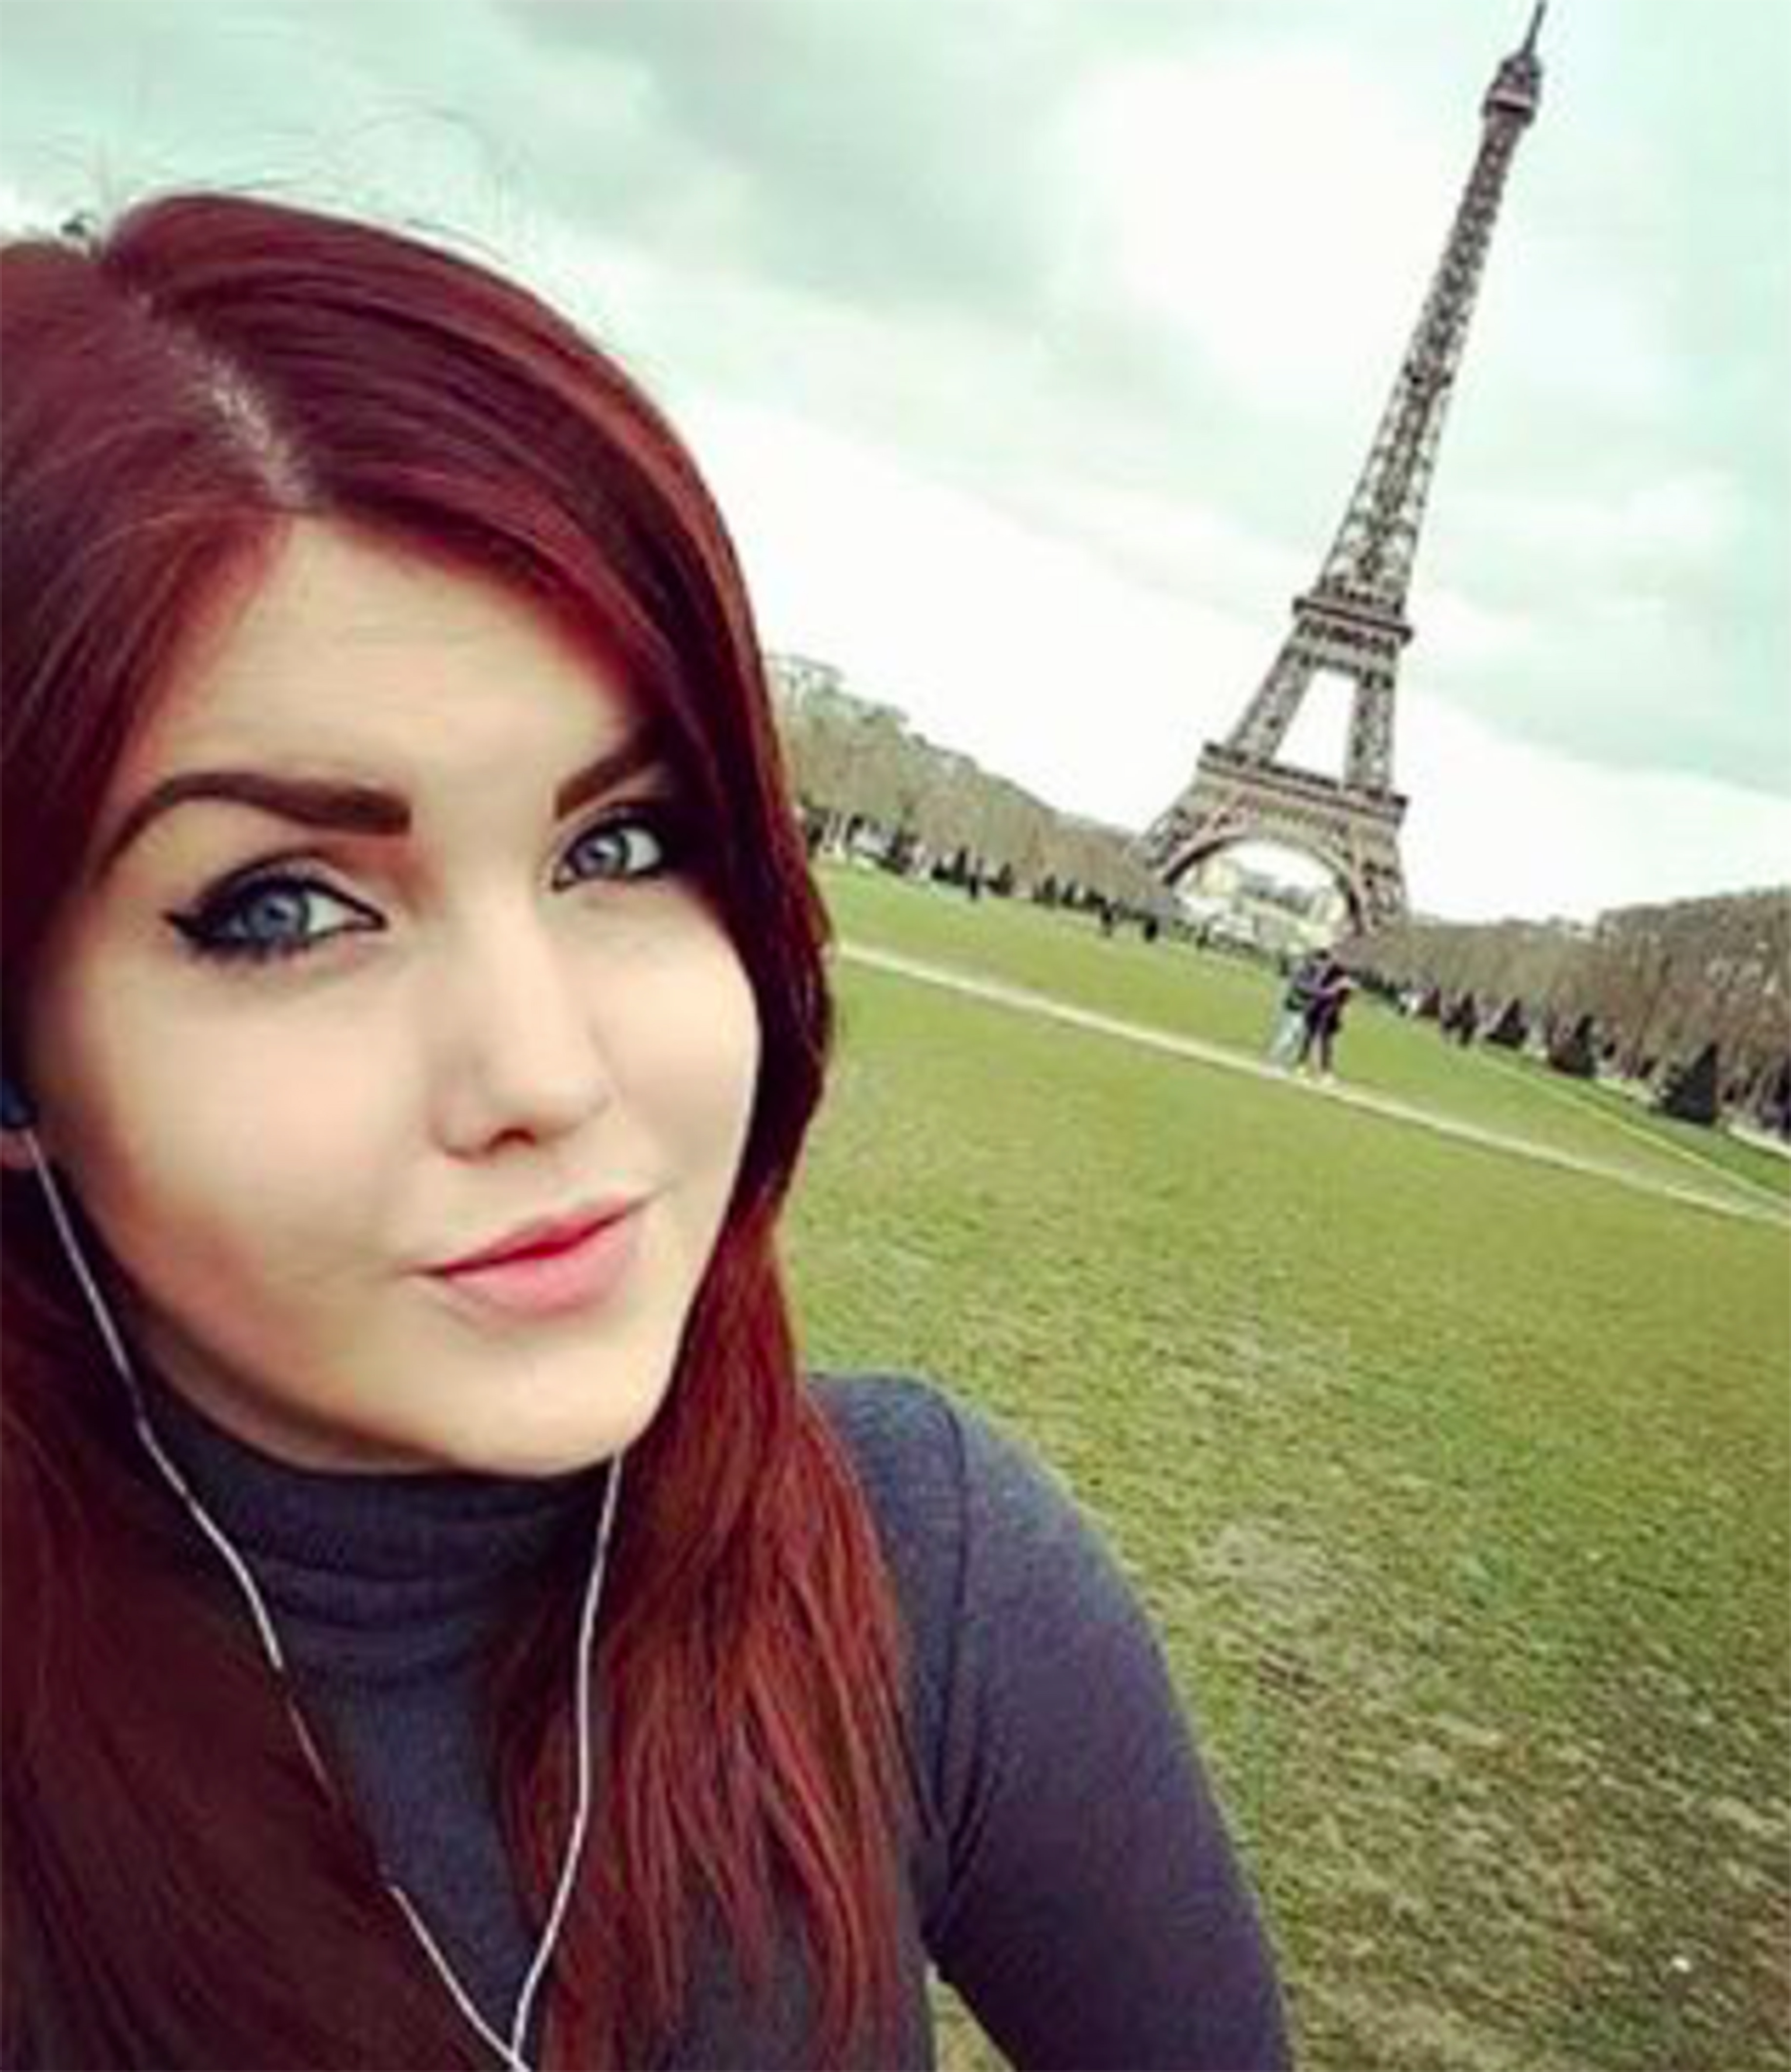 Girls date for free uk